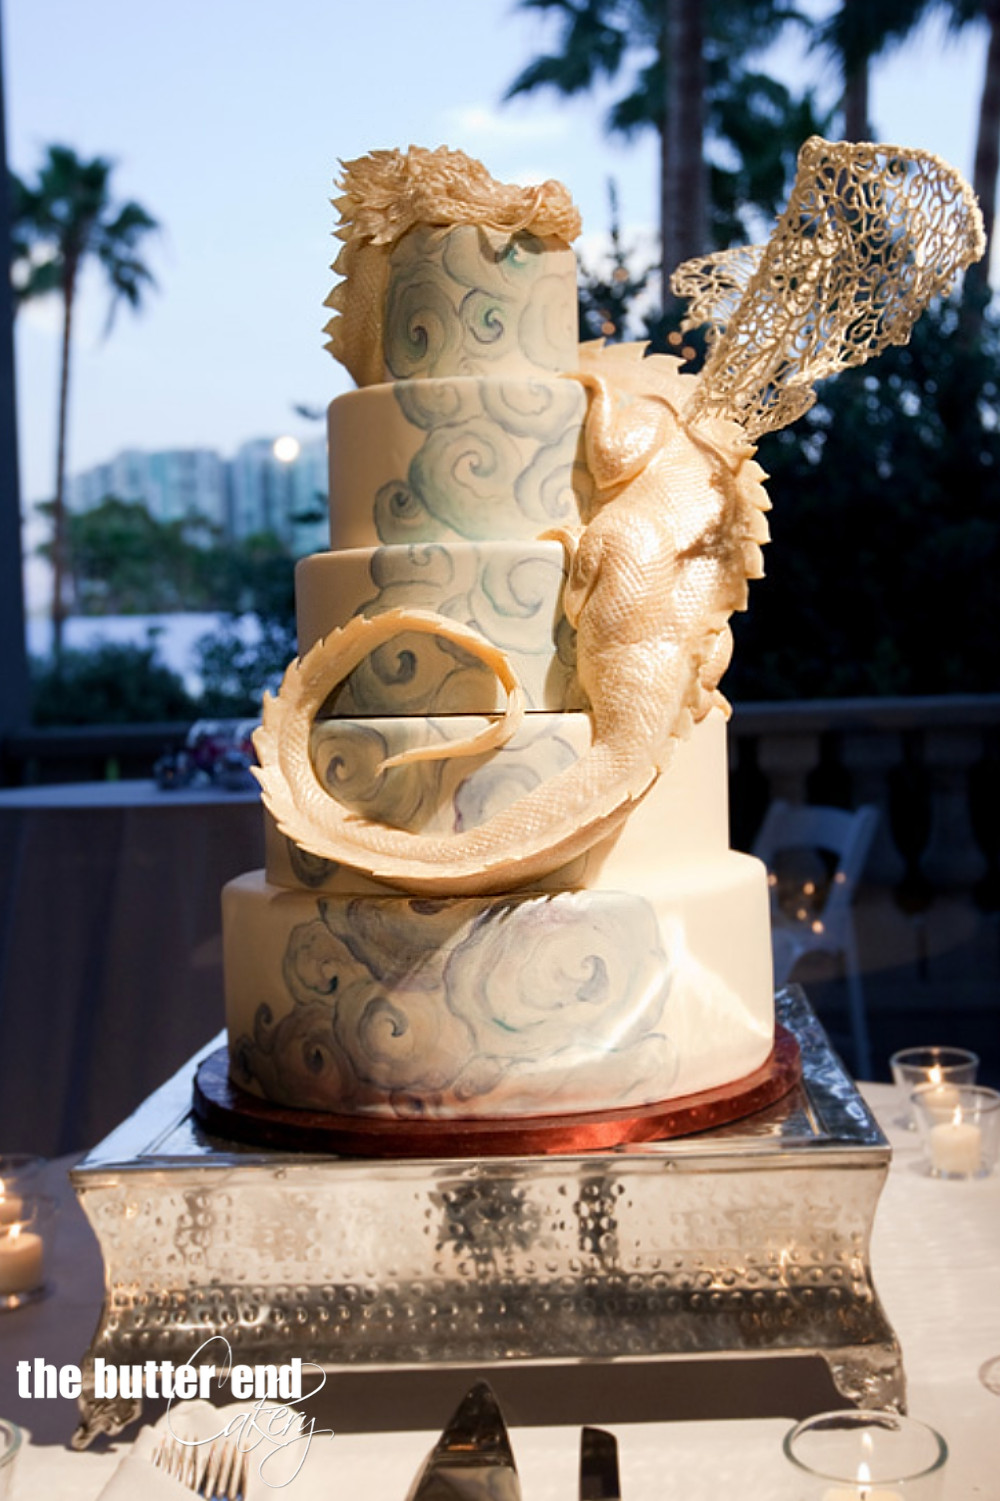 Dragon Wedding Cakes  Wedding Cakes The Butter End Cakery